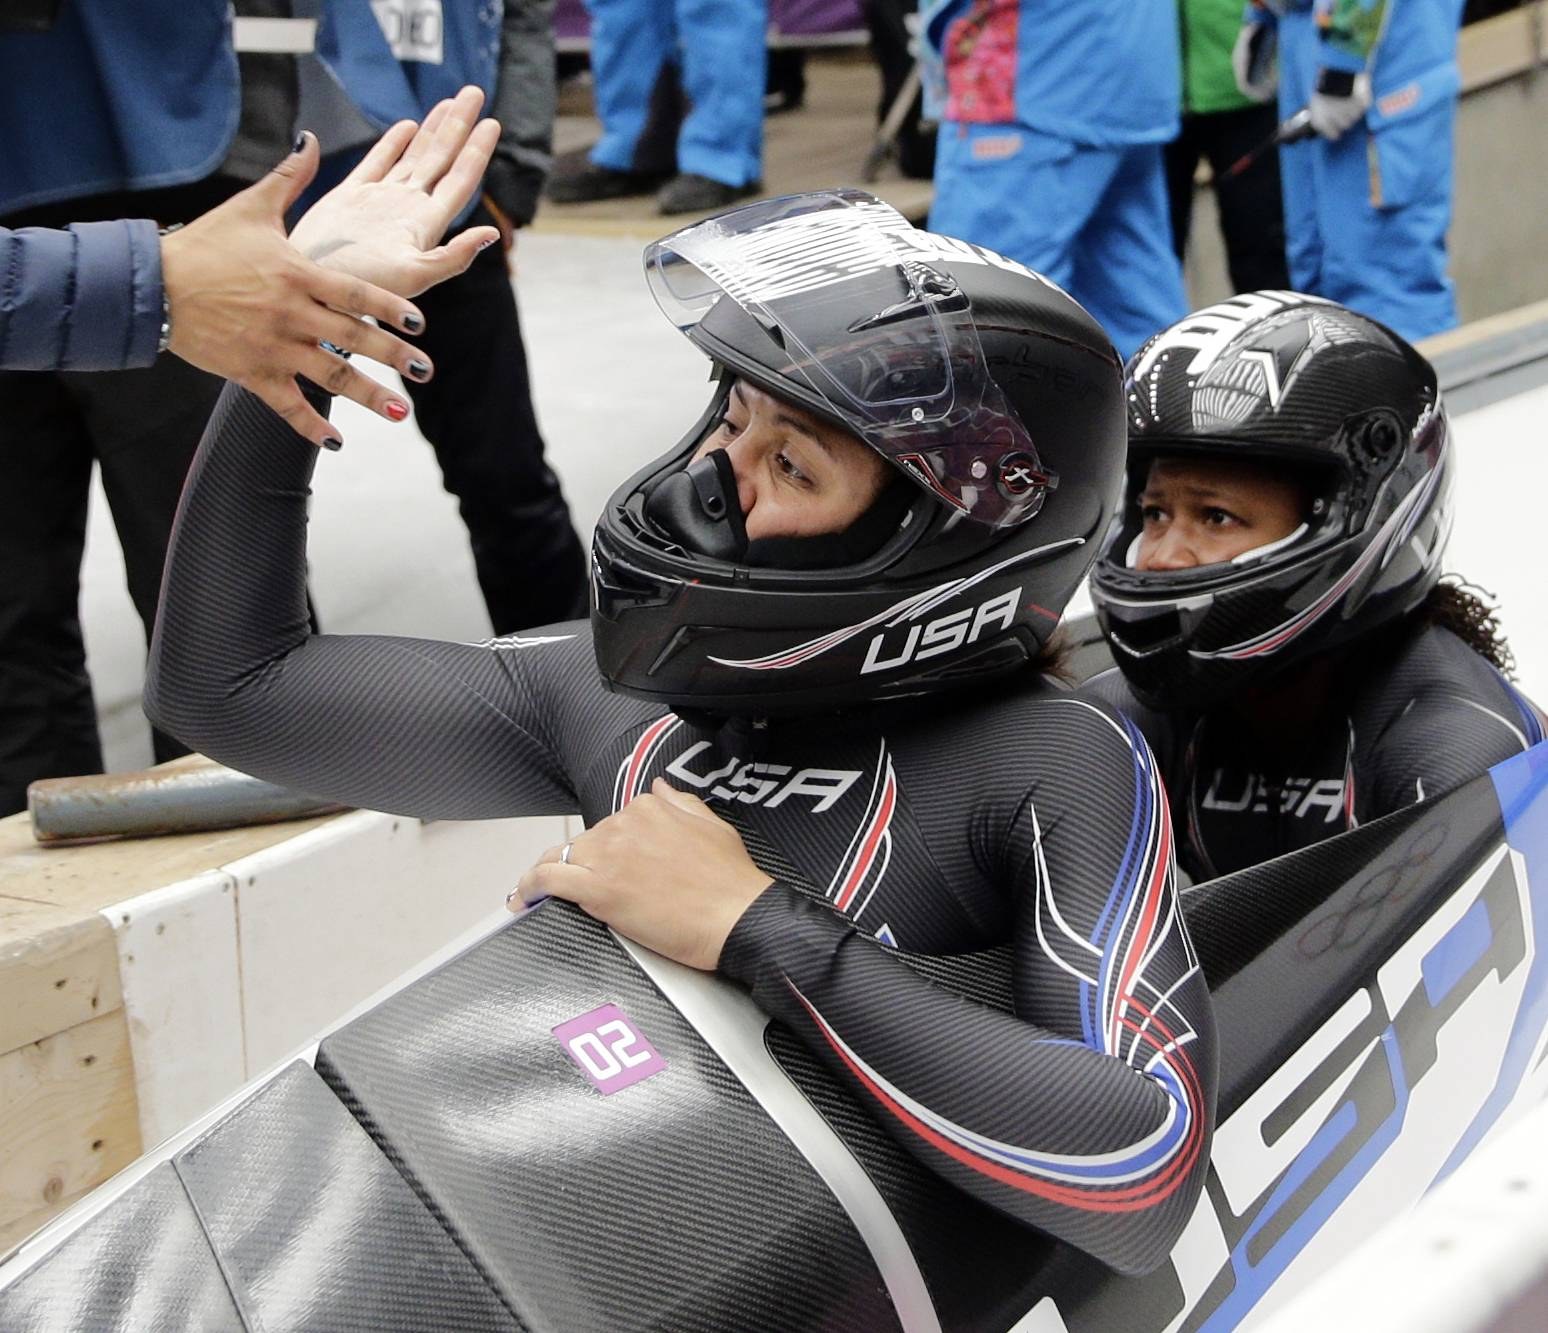 The team from the United States USA-1, piloted by Elana Meyers with brakeman Lauryn Williams, get congratulated in the finish area after their silver medal run.